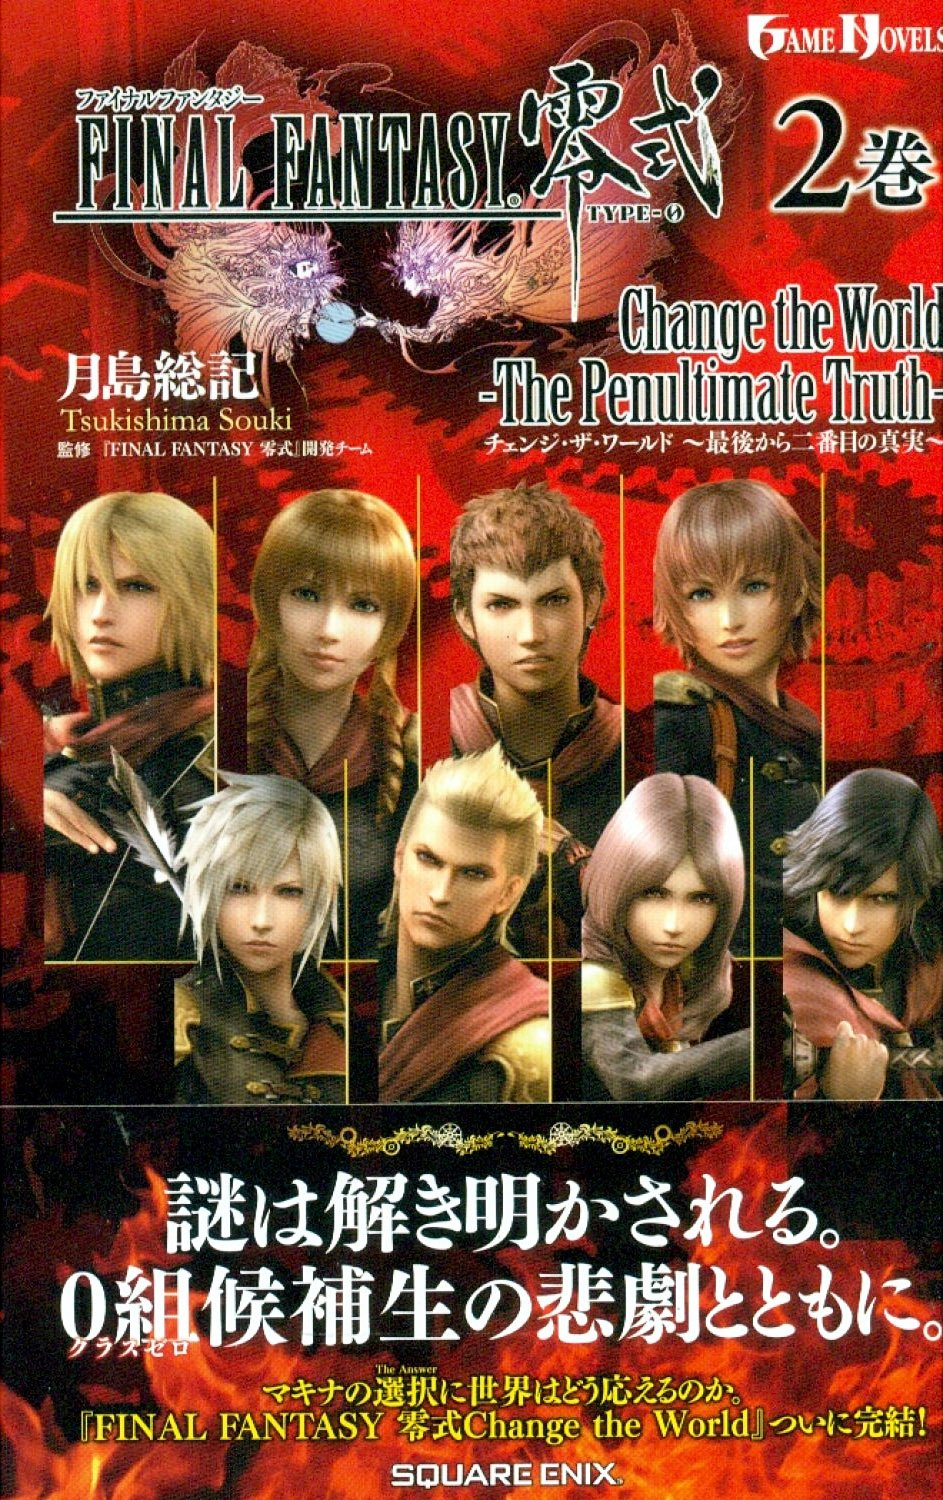 Final Fantasy Type-0: Change the World 2 -The Penultimate Truth-